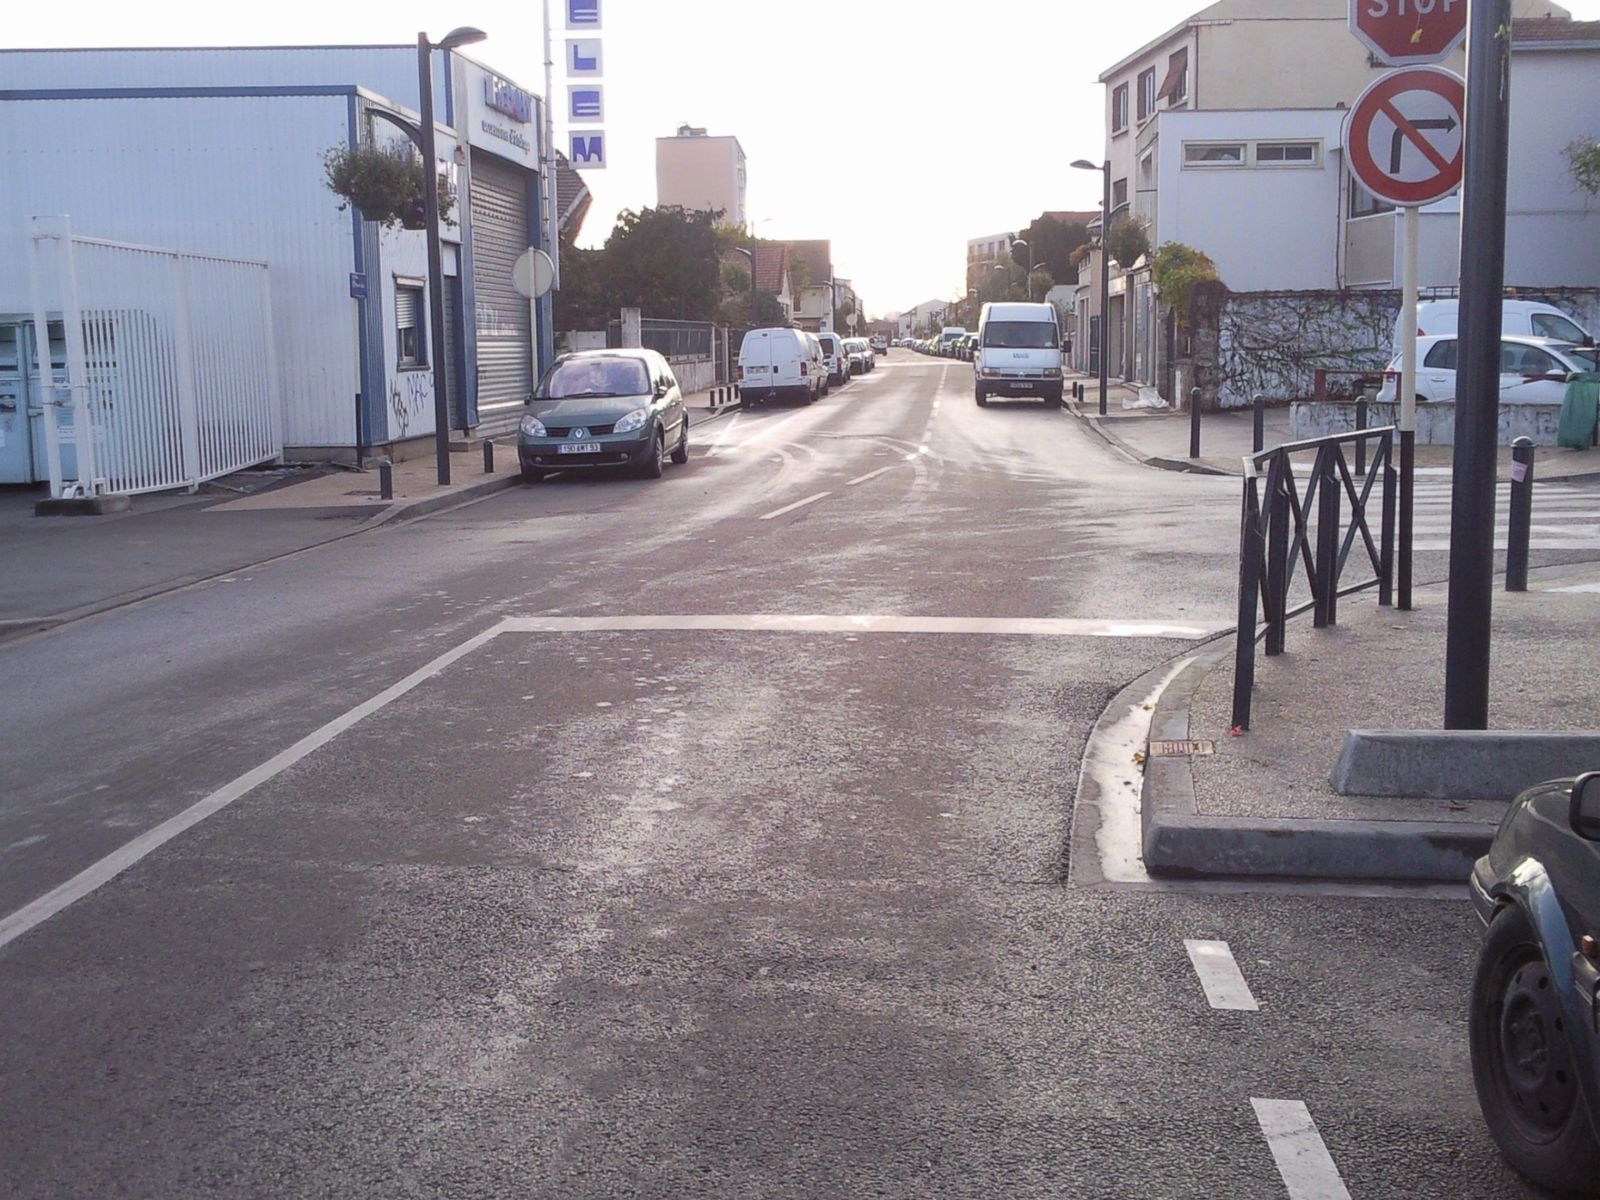 Informations romainville le doigt l o a fait mal for Protector parking carrefour